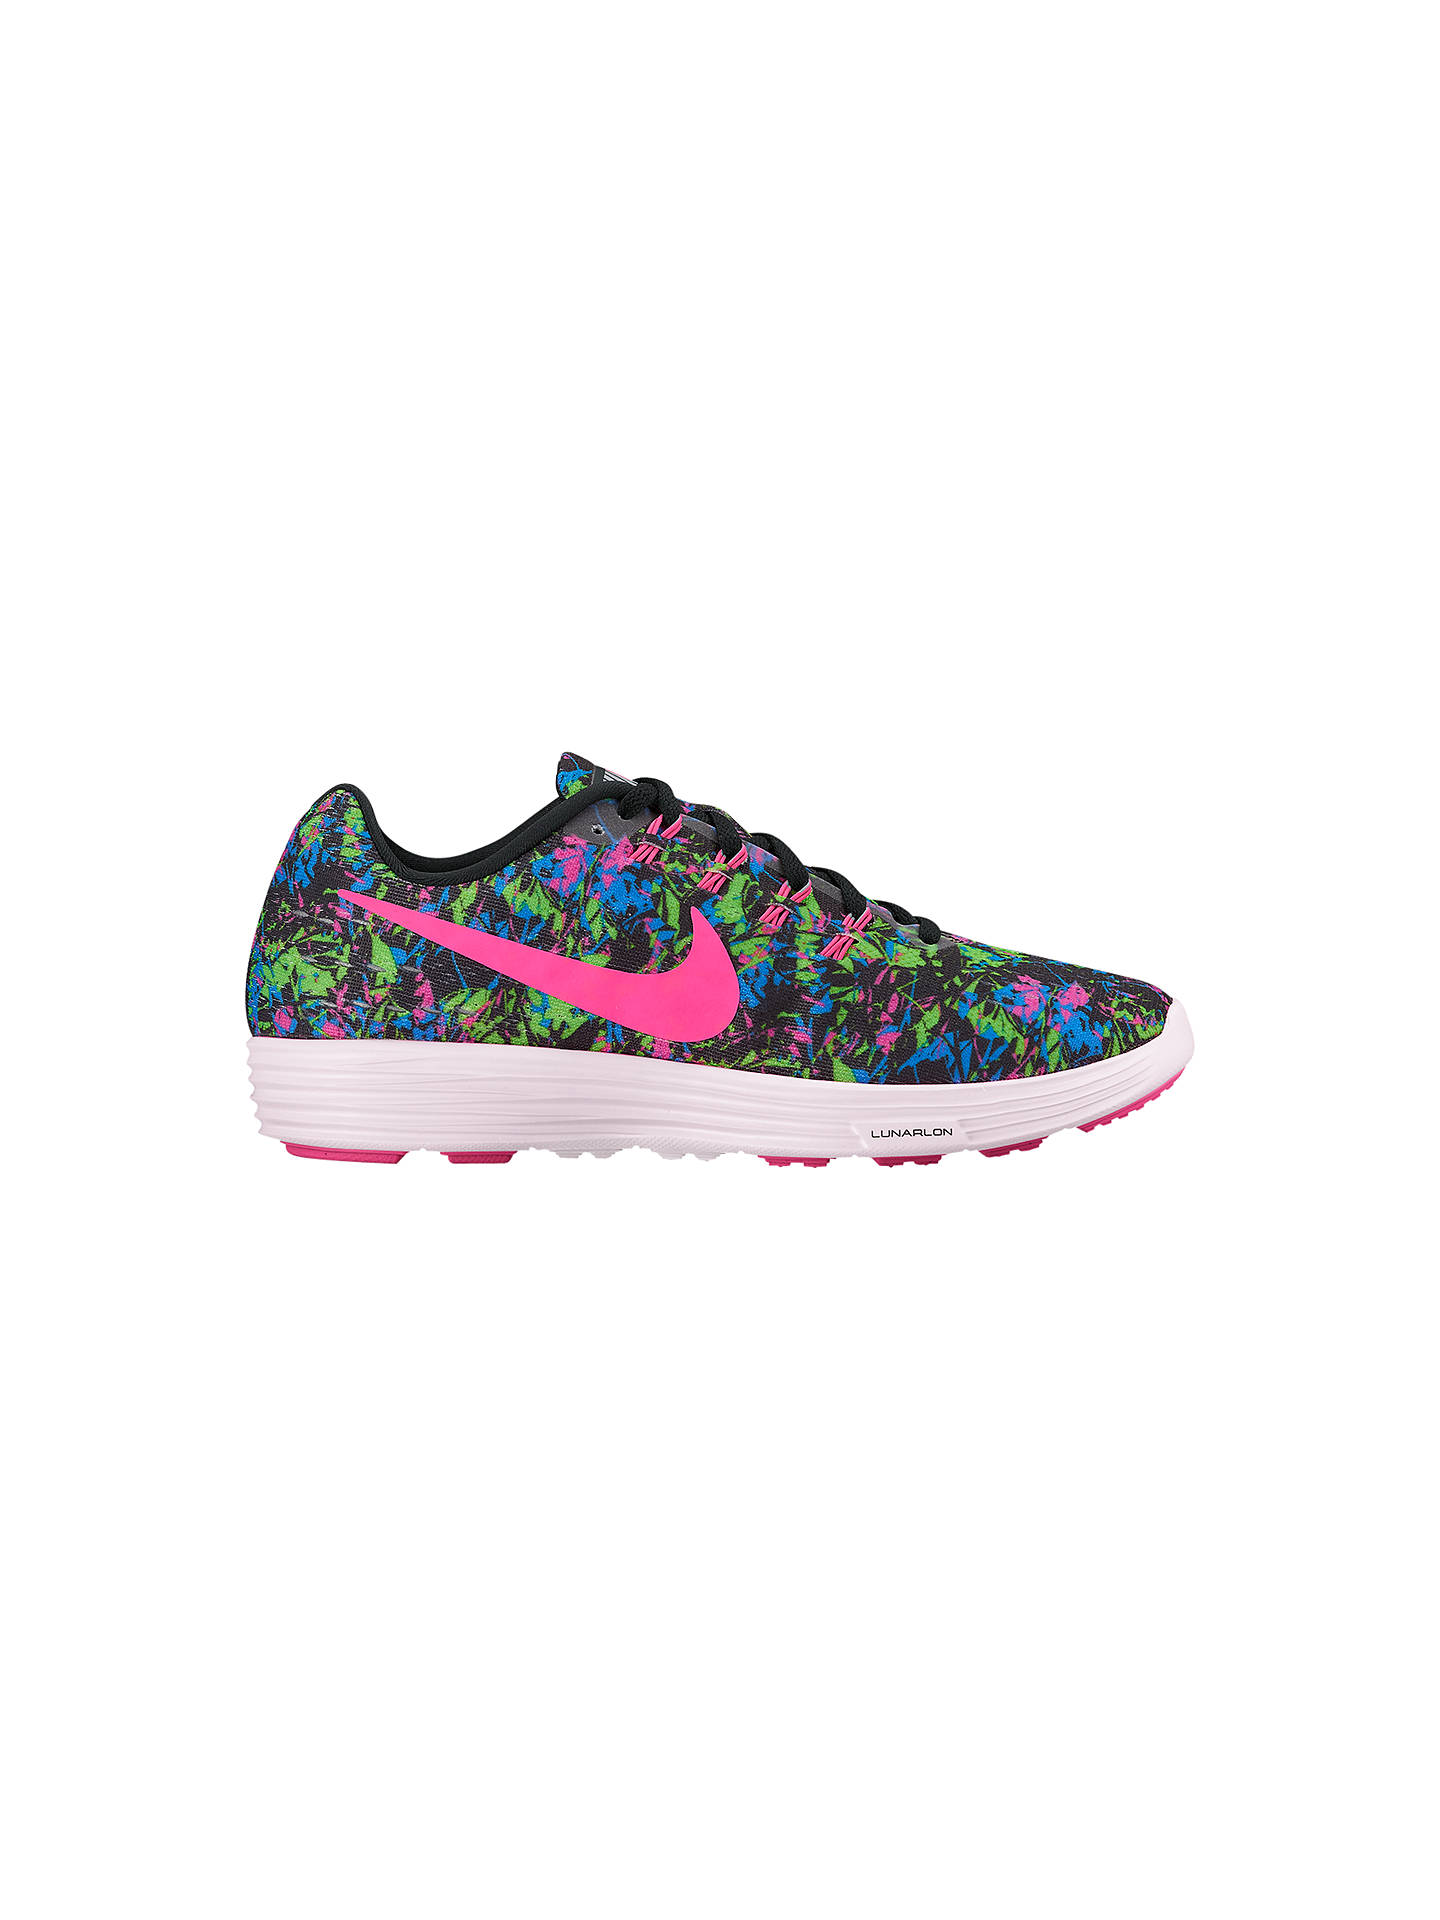 online store 19810 74a04 Buy Nike Women s LunarTempo 2 Print Running Shoes, Black Pink, 4 Online at  ...